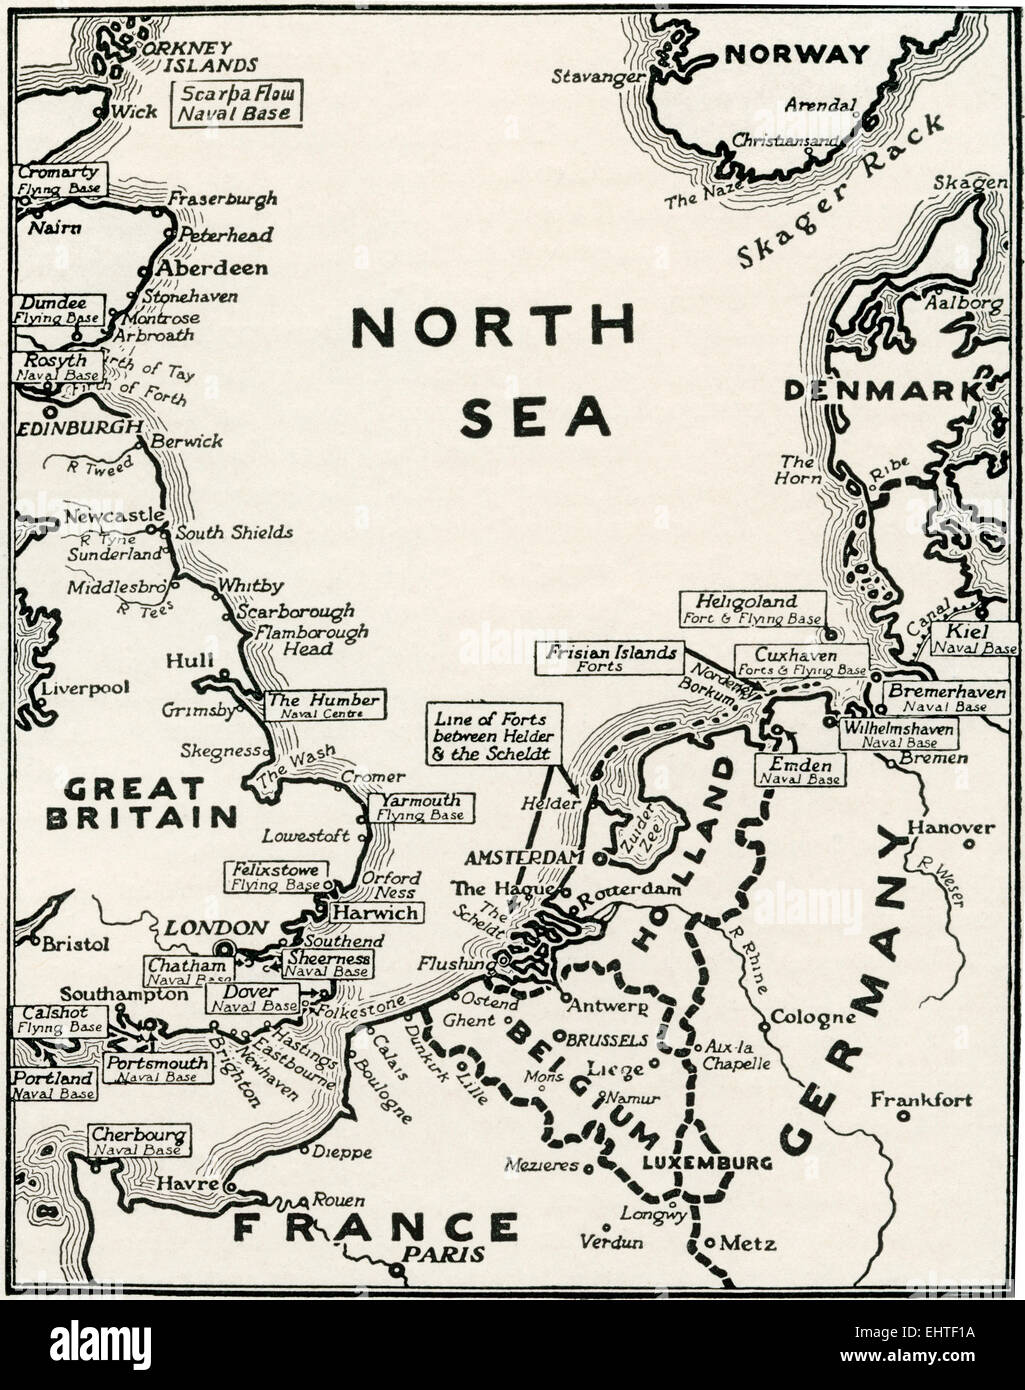 Map showing the naval bases of the North Sea during World War One. - Stock Image